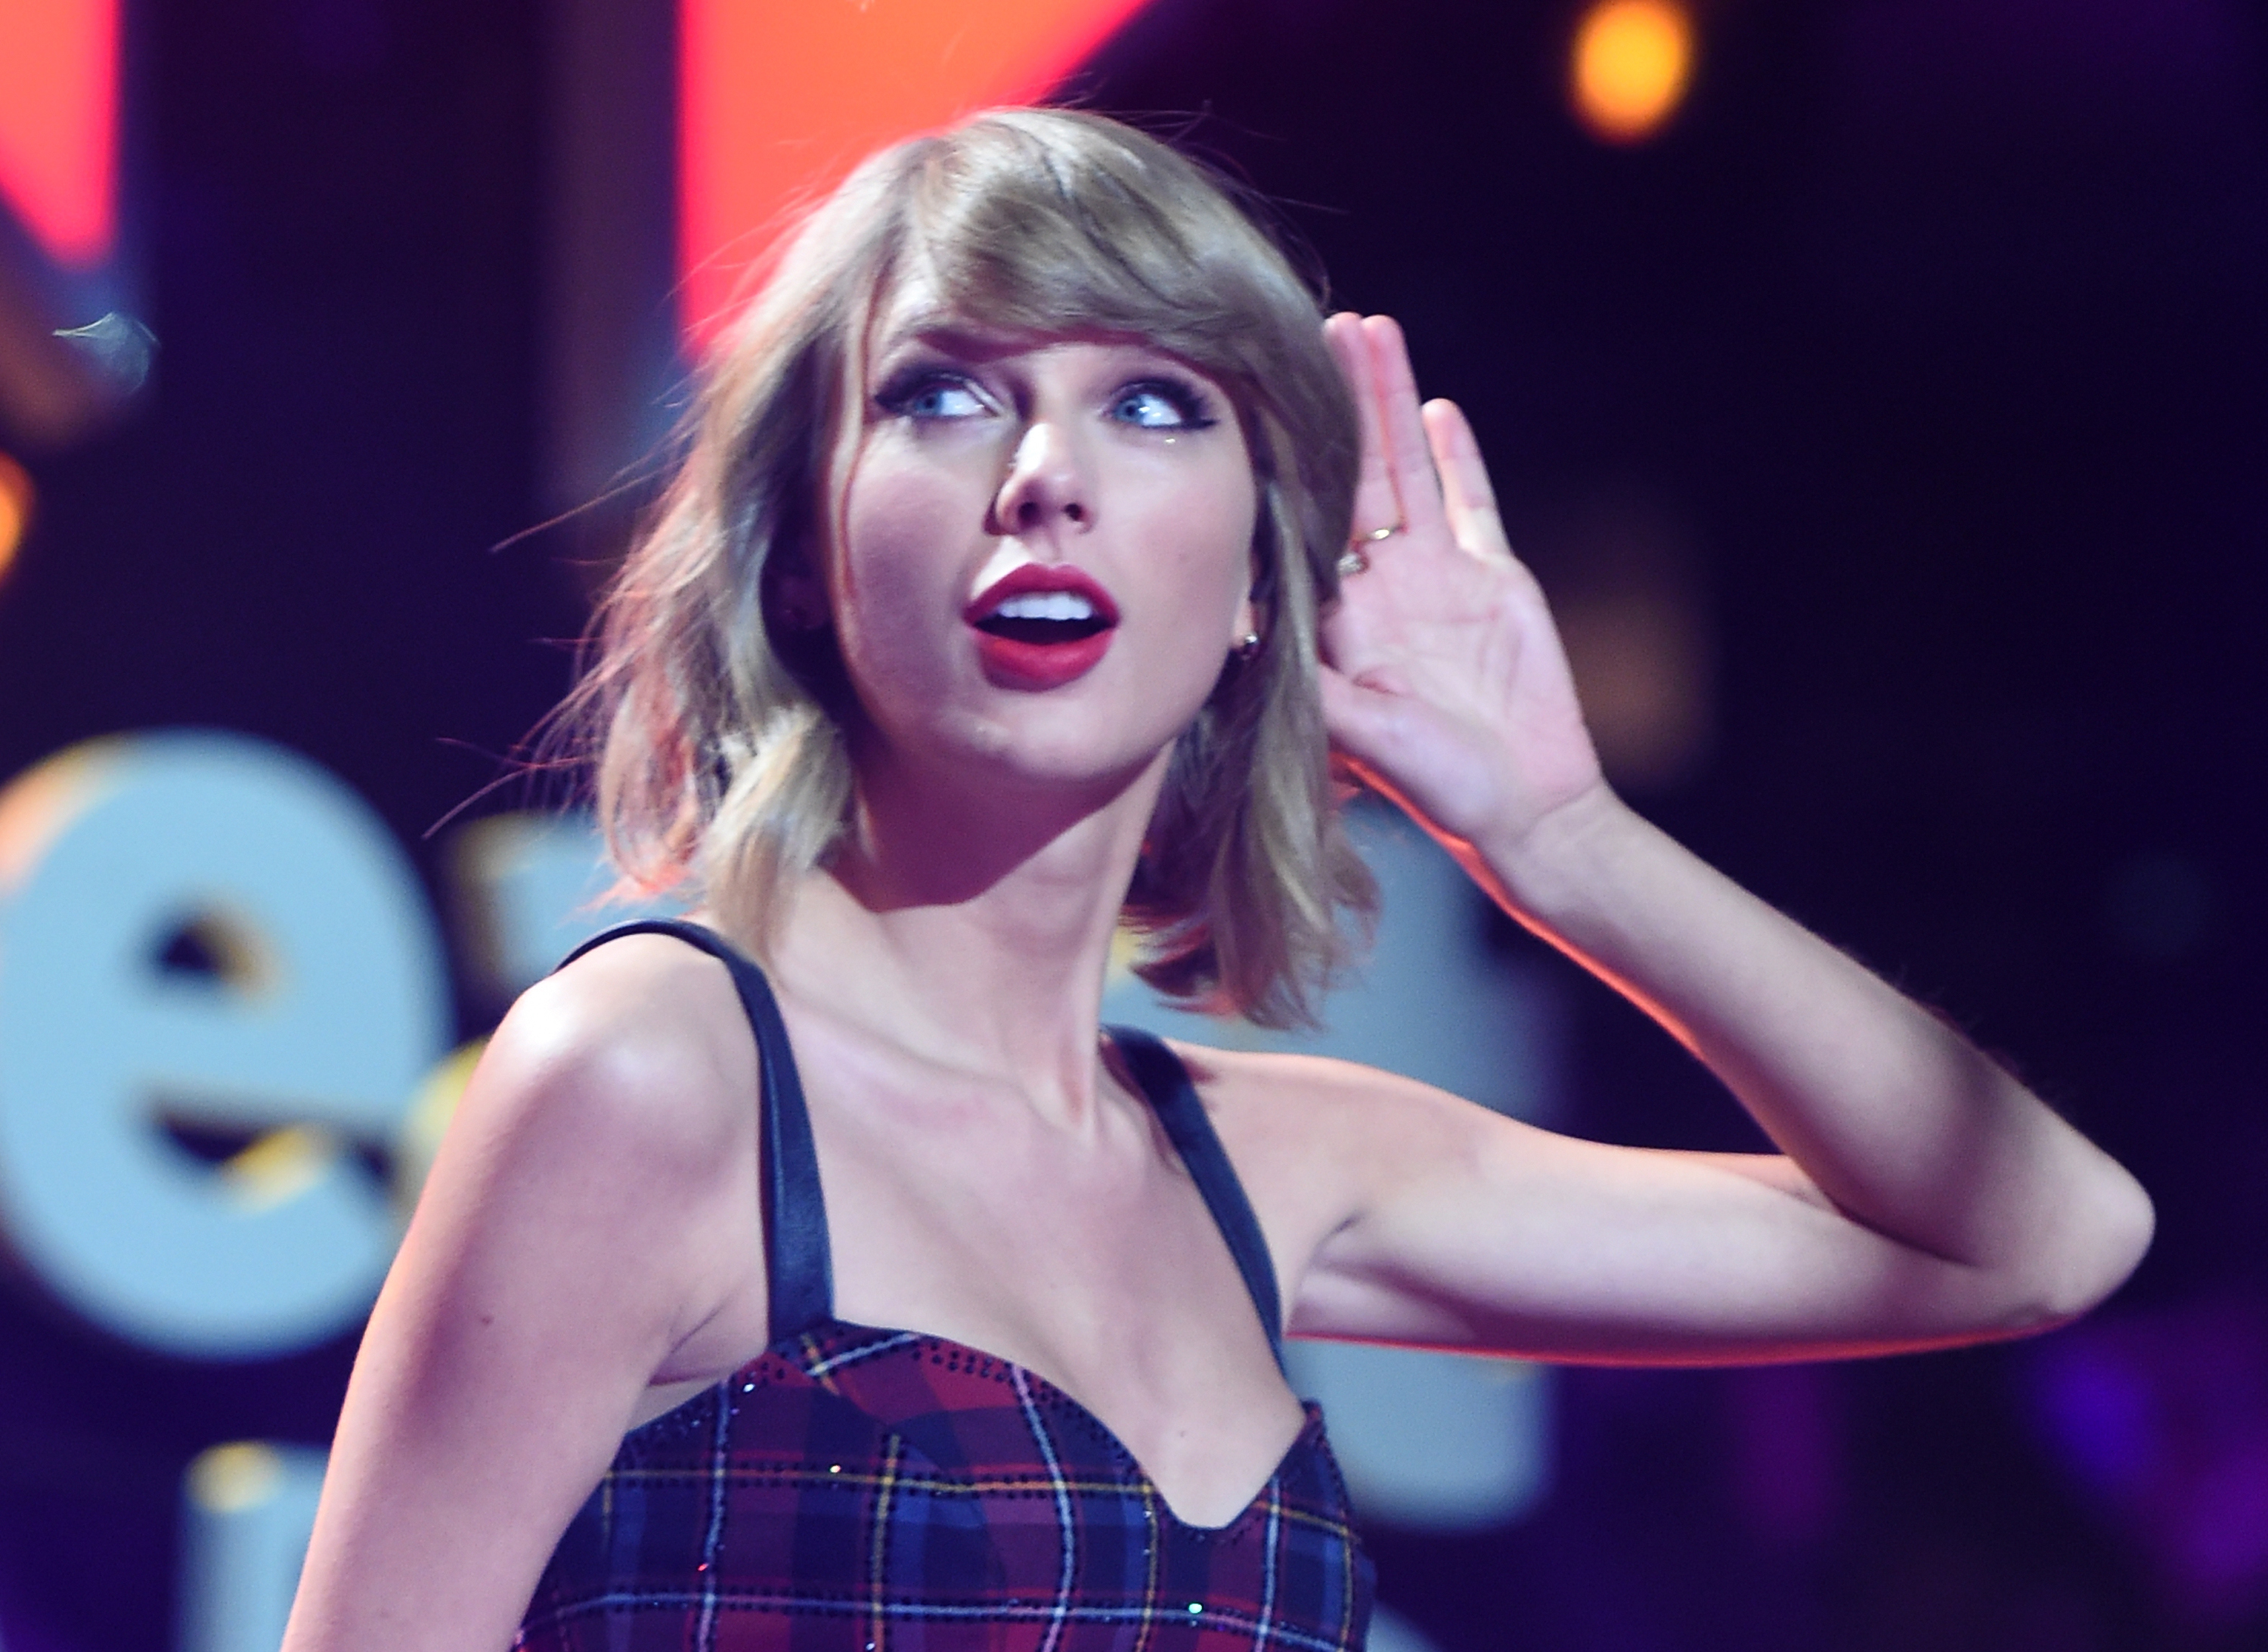 Taylor Swift performs onstage during iHeartRadio Jingle Ball 2014, hosted by Z100 New York and presented by Goldfish Puffs at Madison Square Garden on December 12, 2014 in New York City.